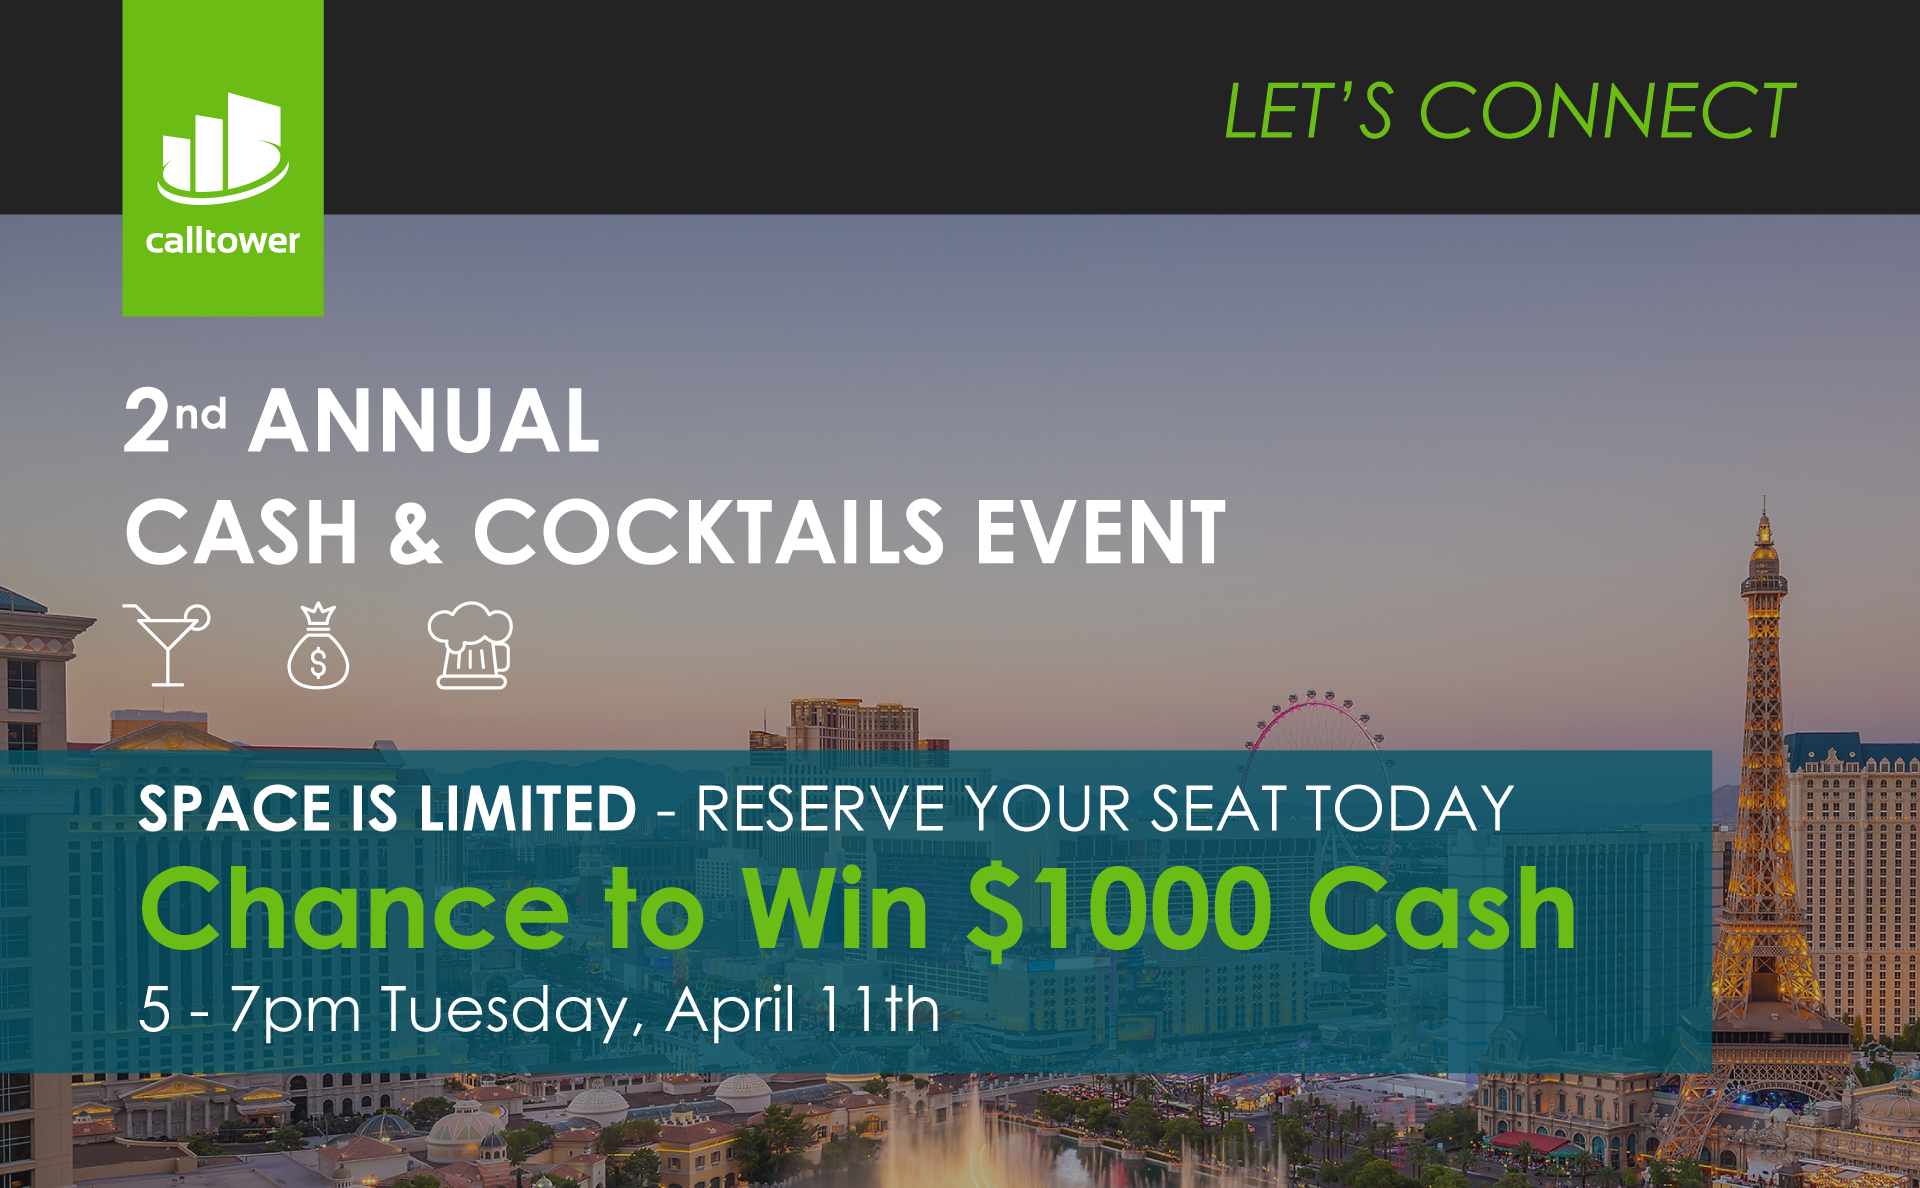 We're giving away cash & cocktails